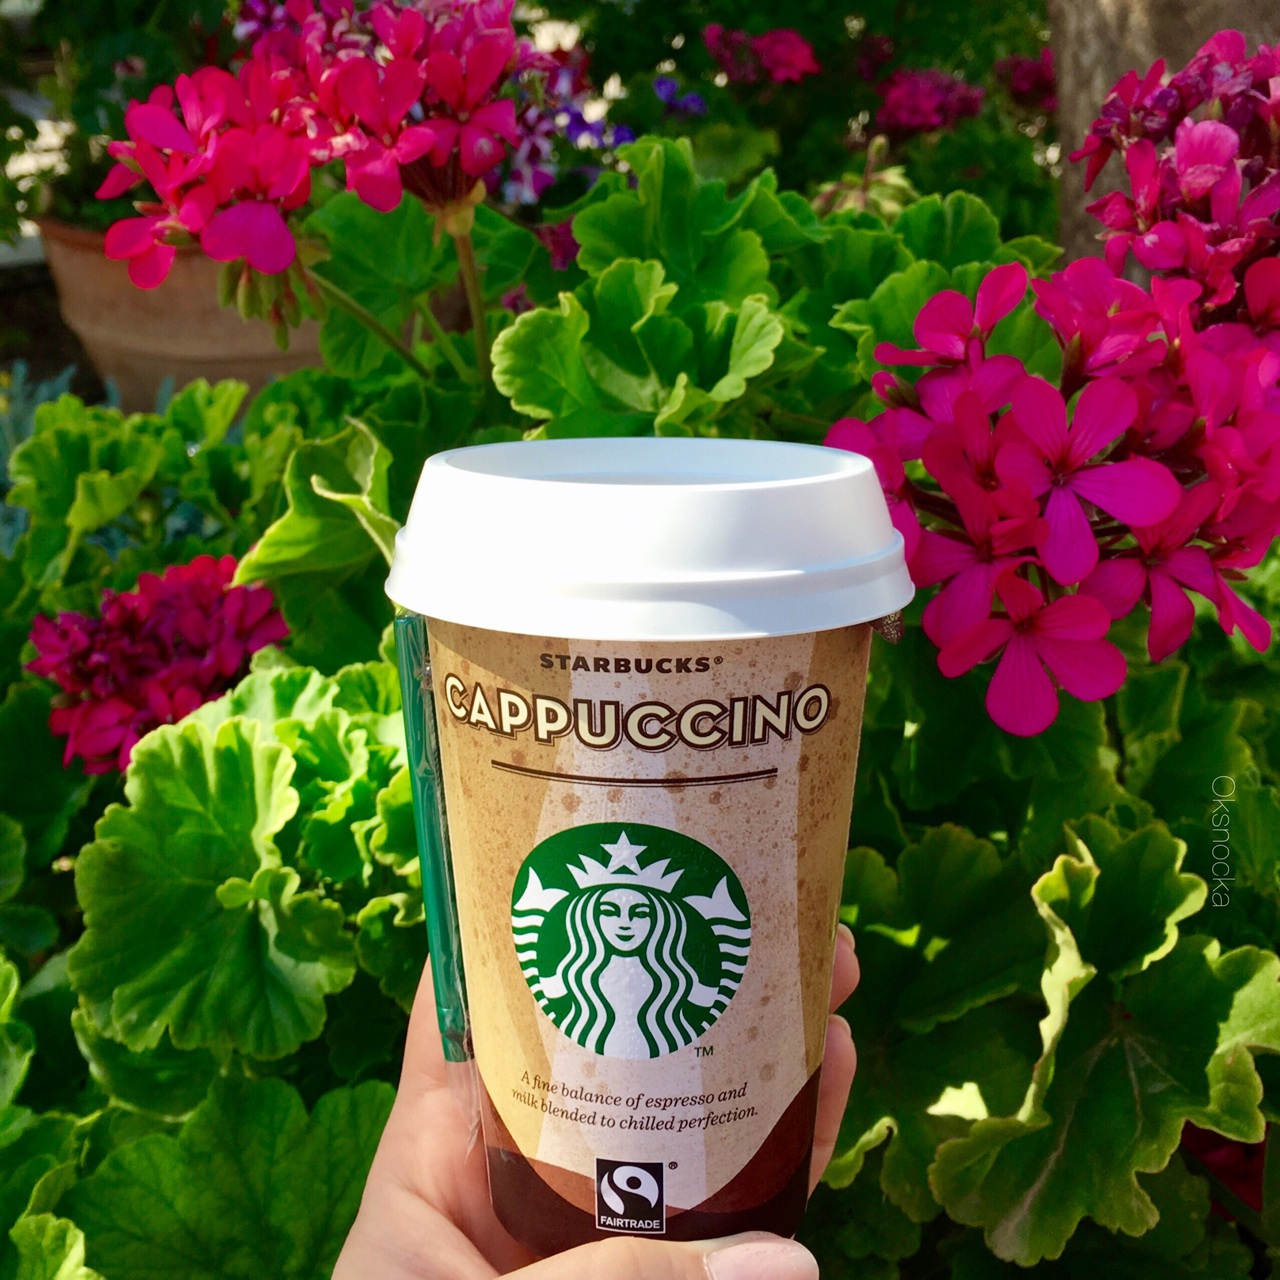 beauty, cappuccino, coffee, drink, flowers